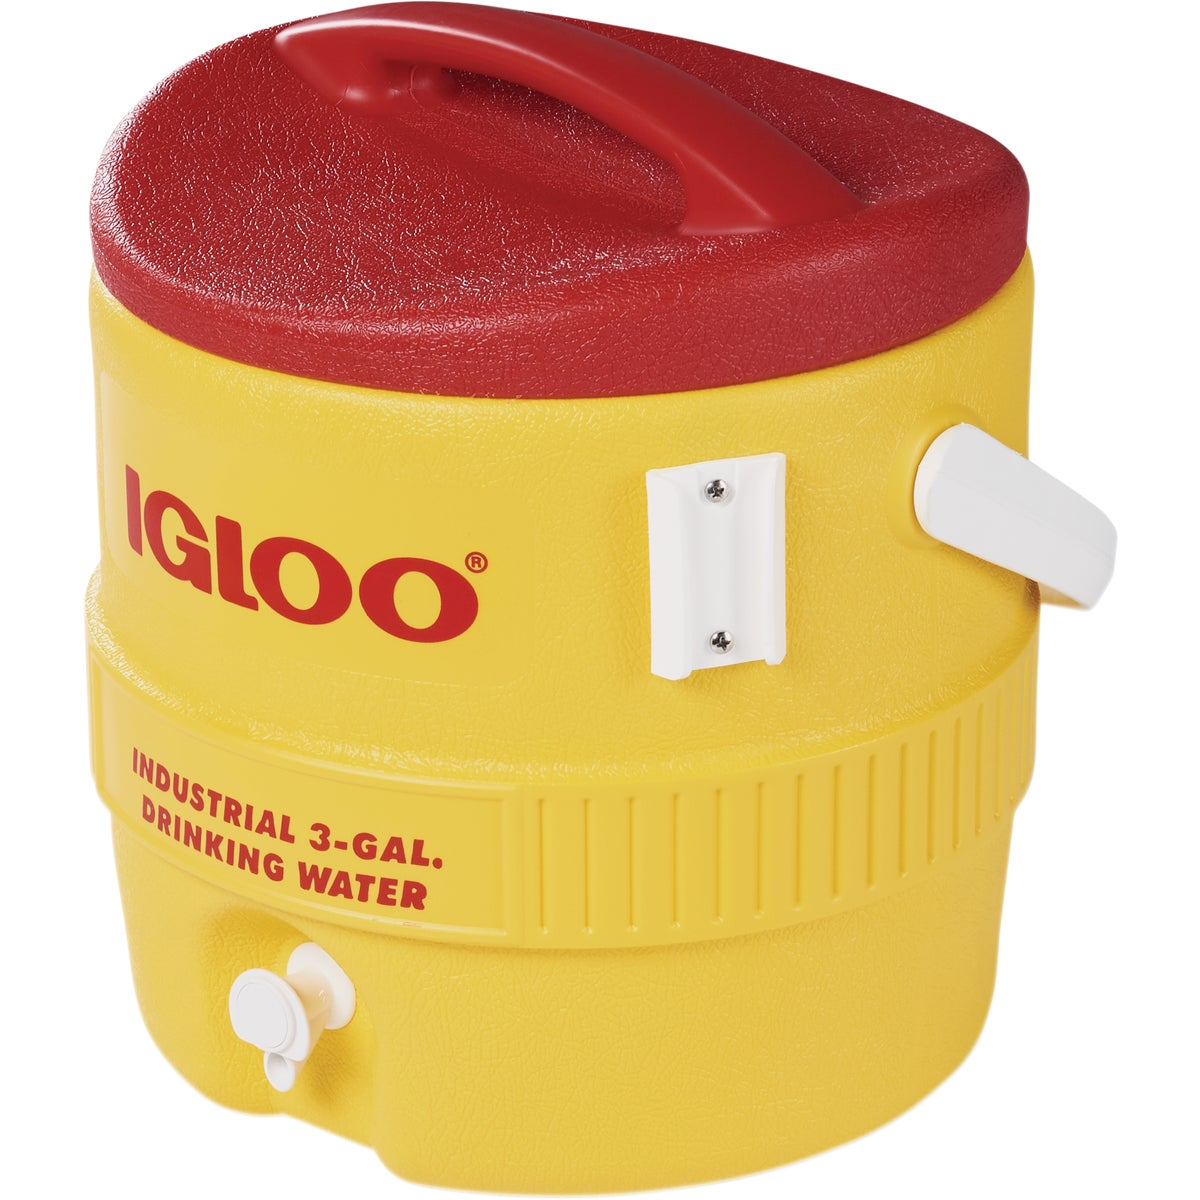 Igloo 3GAL BEVERAGE COOLER 431